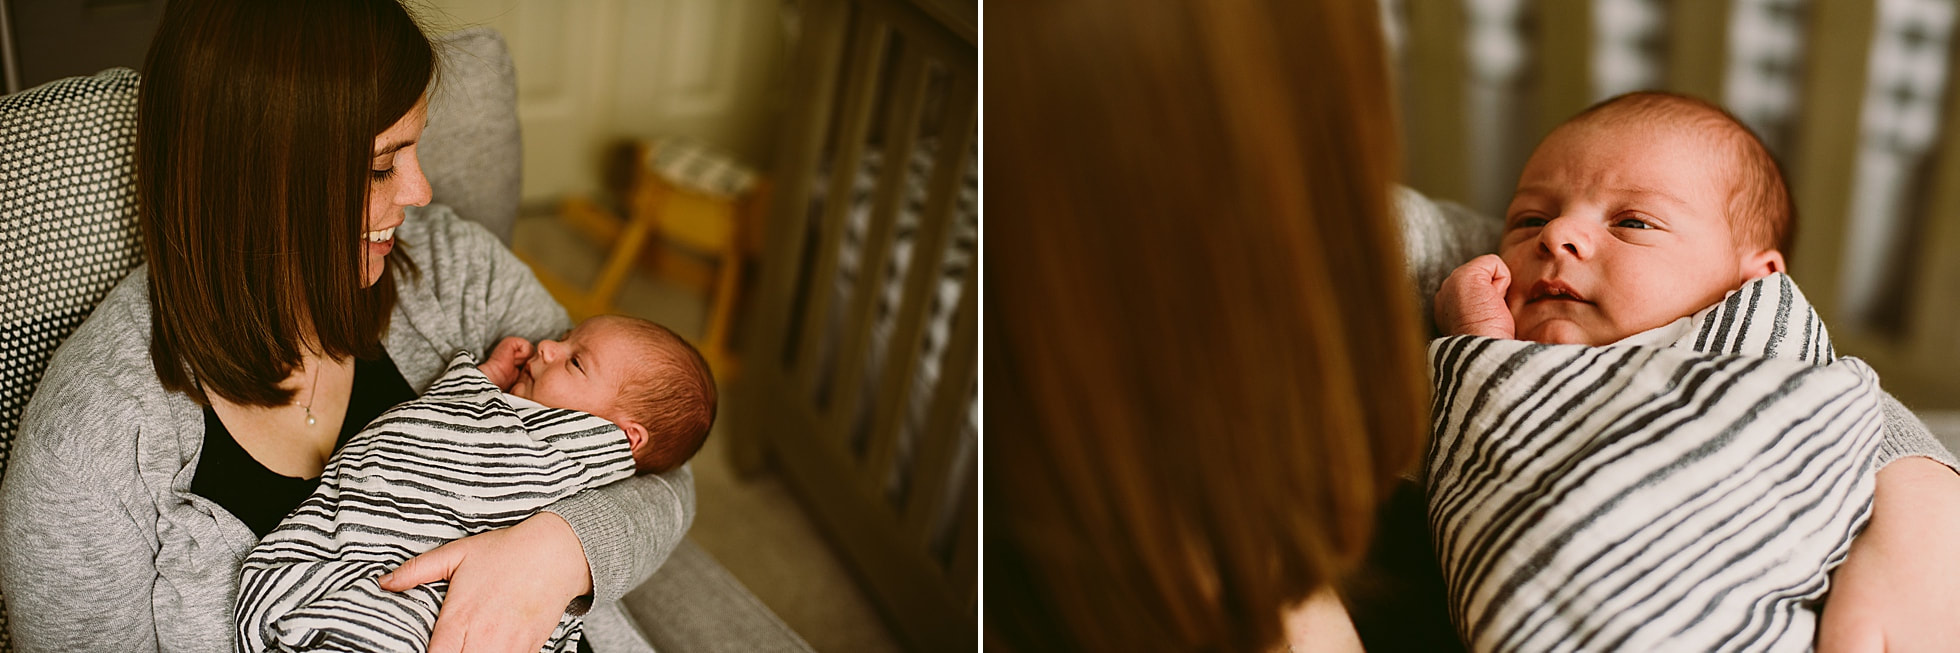 Mother and newborn moments during an at-home photography session by Laura Richards